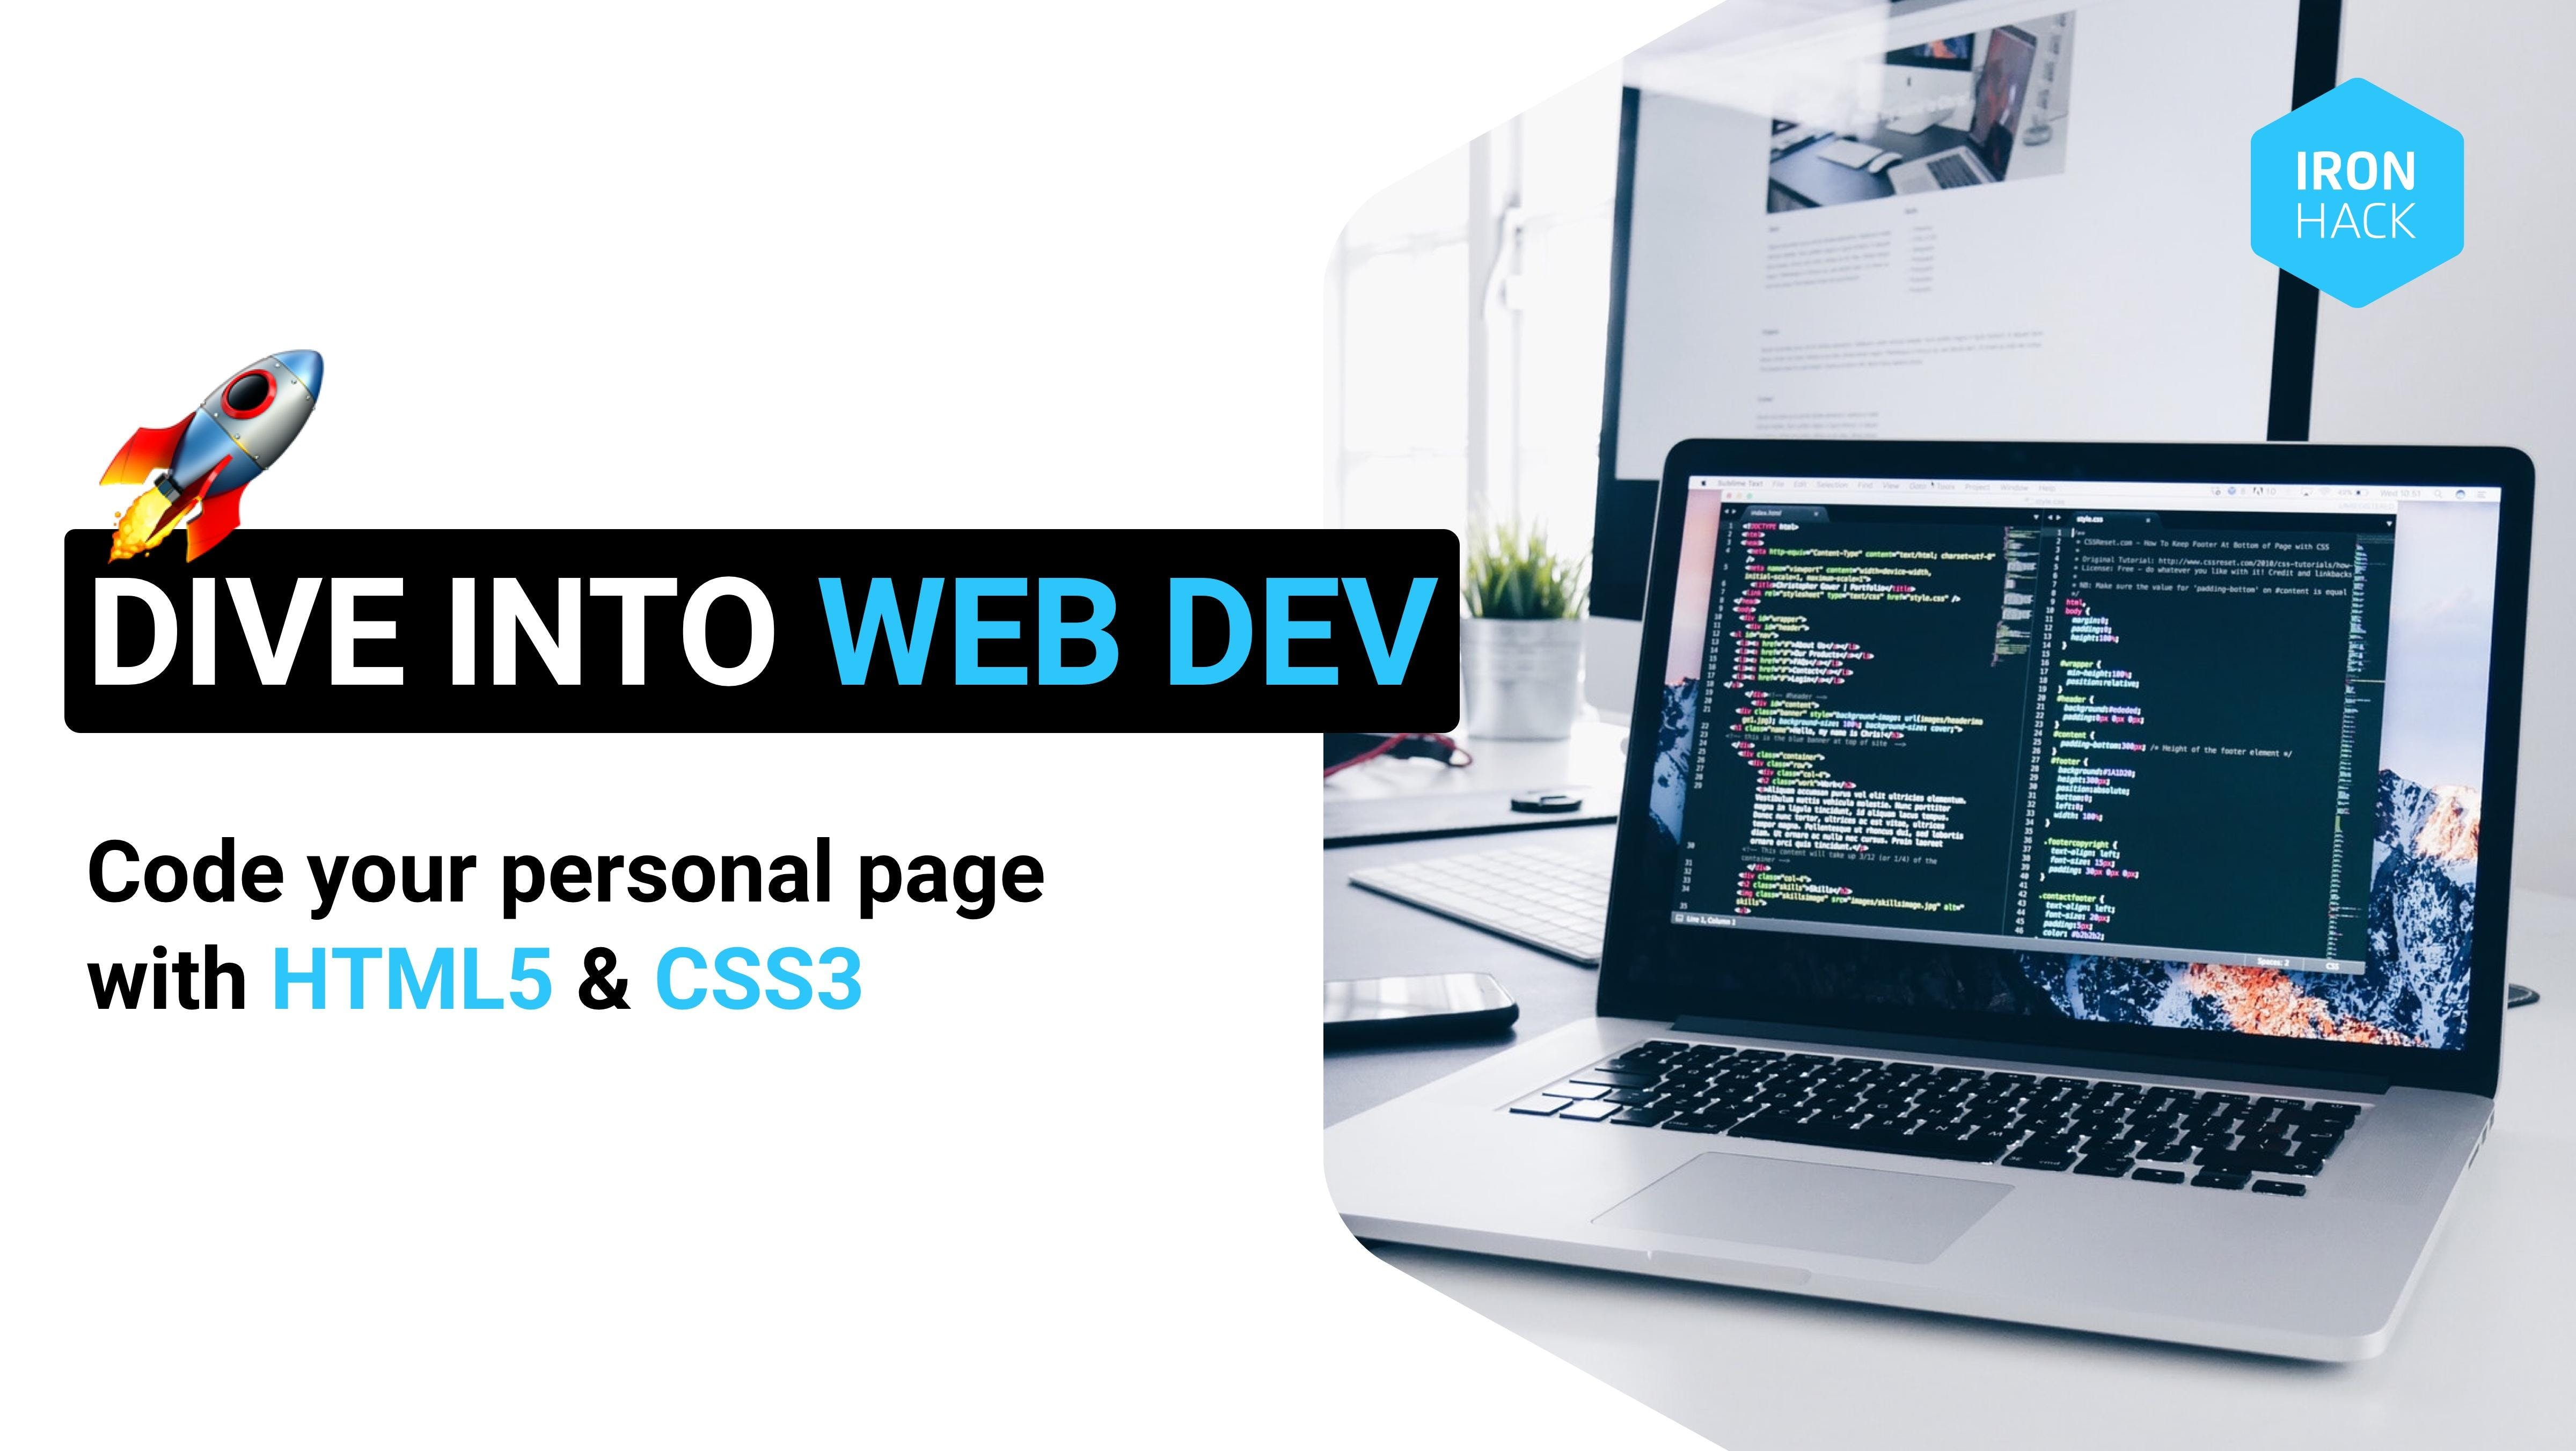 Dive into Web Development: Code Your Personal